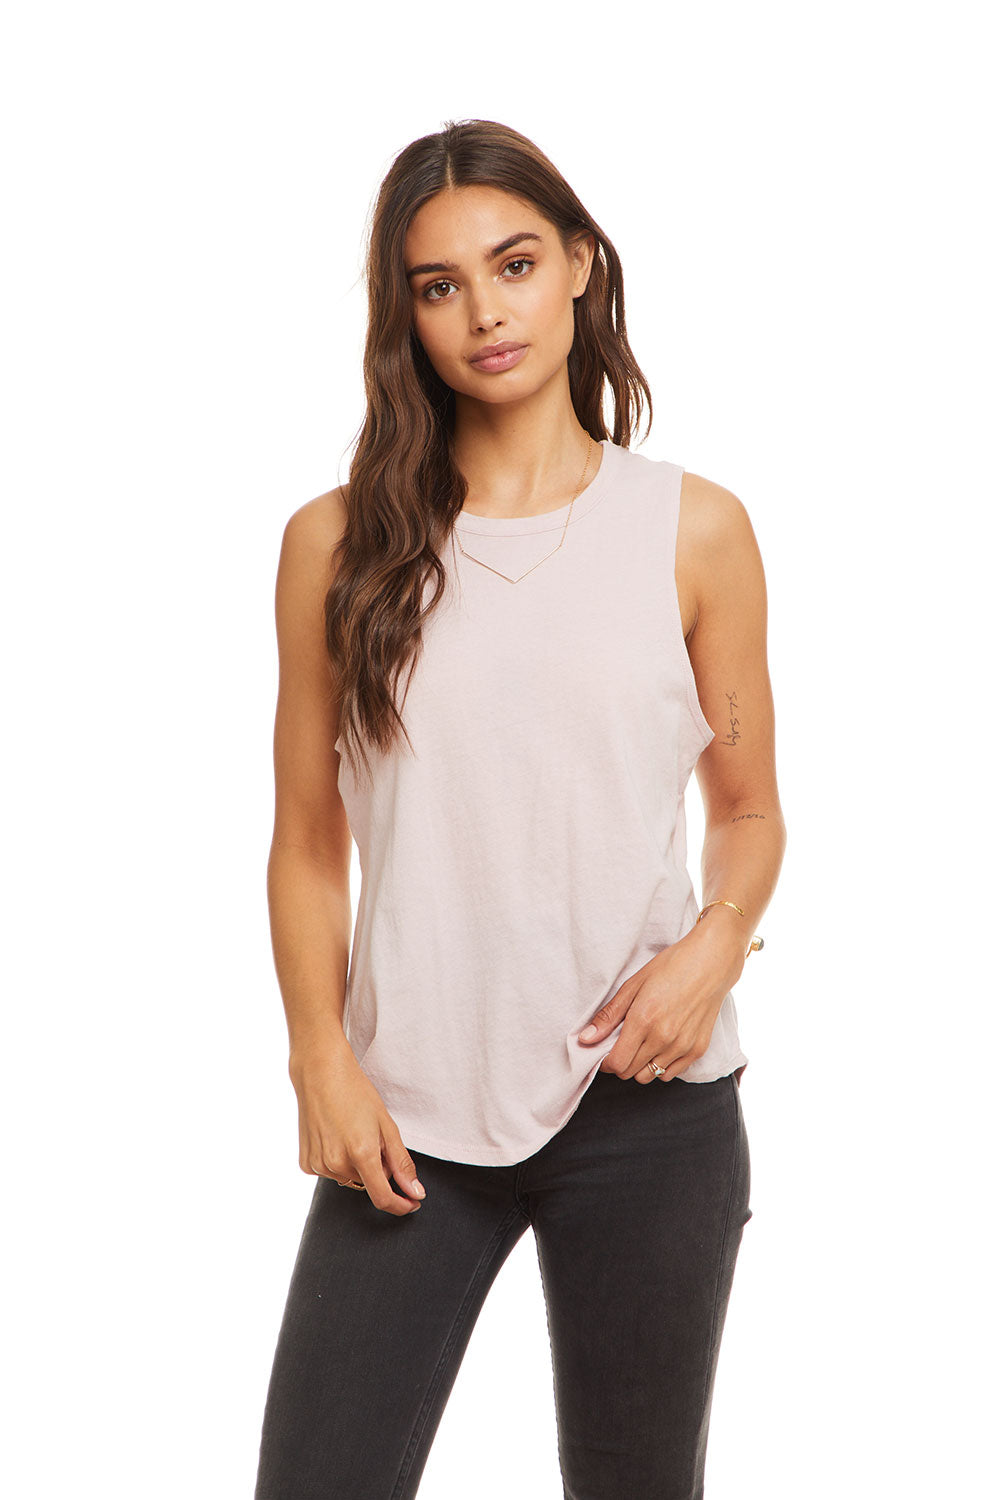 Cotton Basic Seamed Shirttail Muscle Tank, WOMENS, chaserbrand.com,chaser clothing,chaser apparel,chaser los angeles